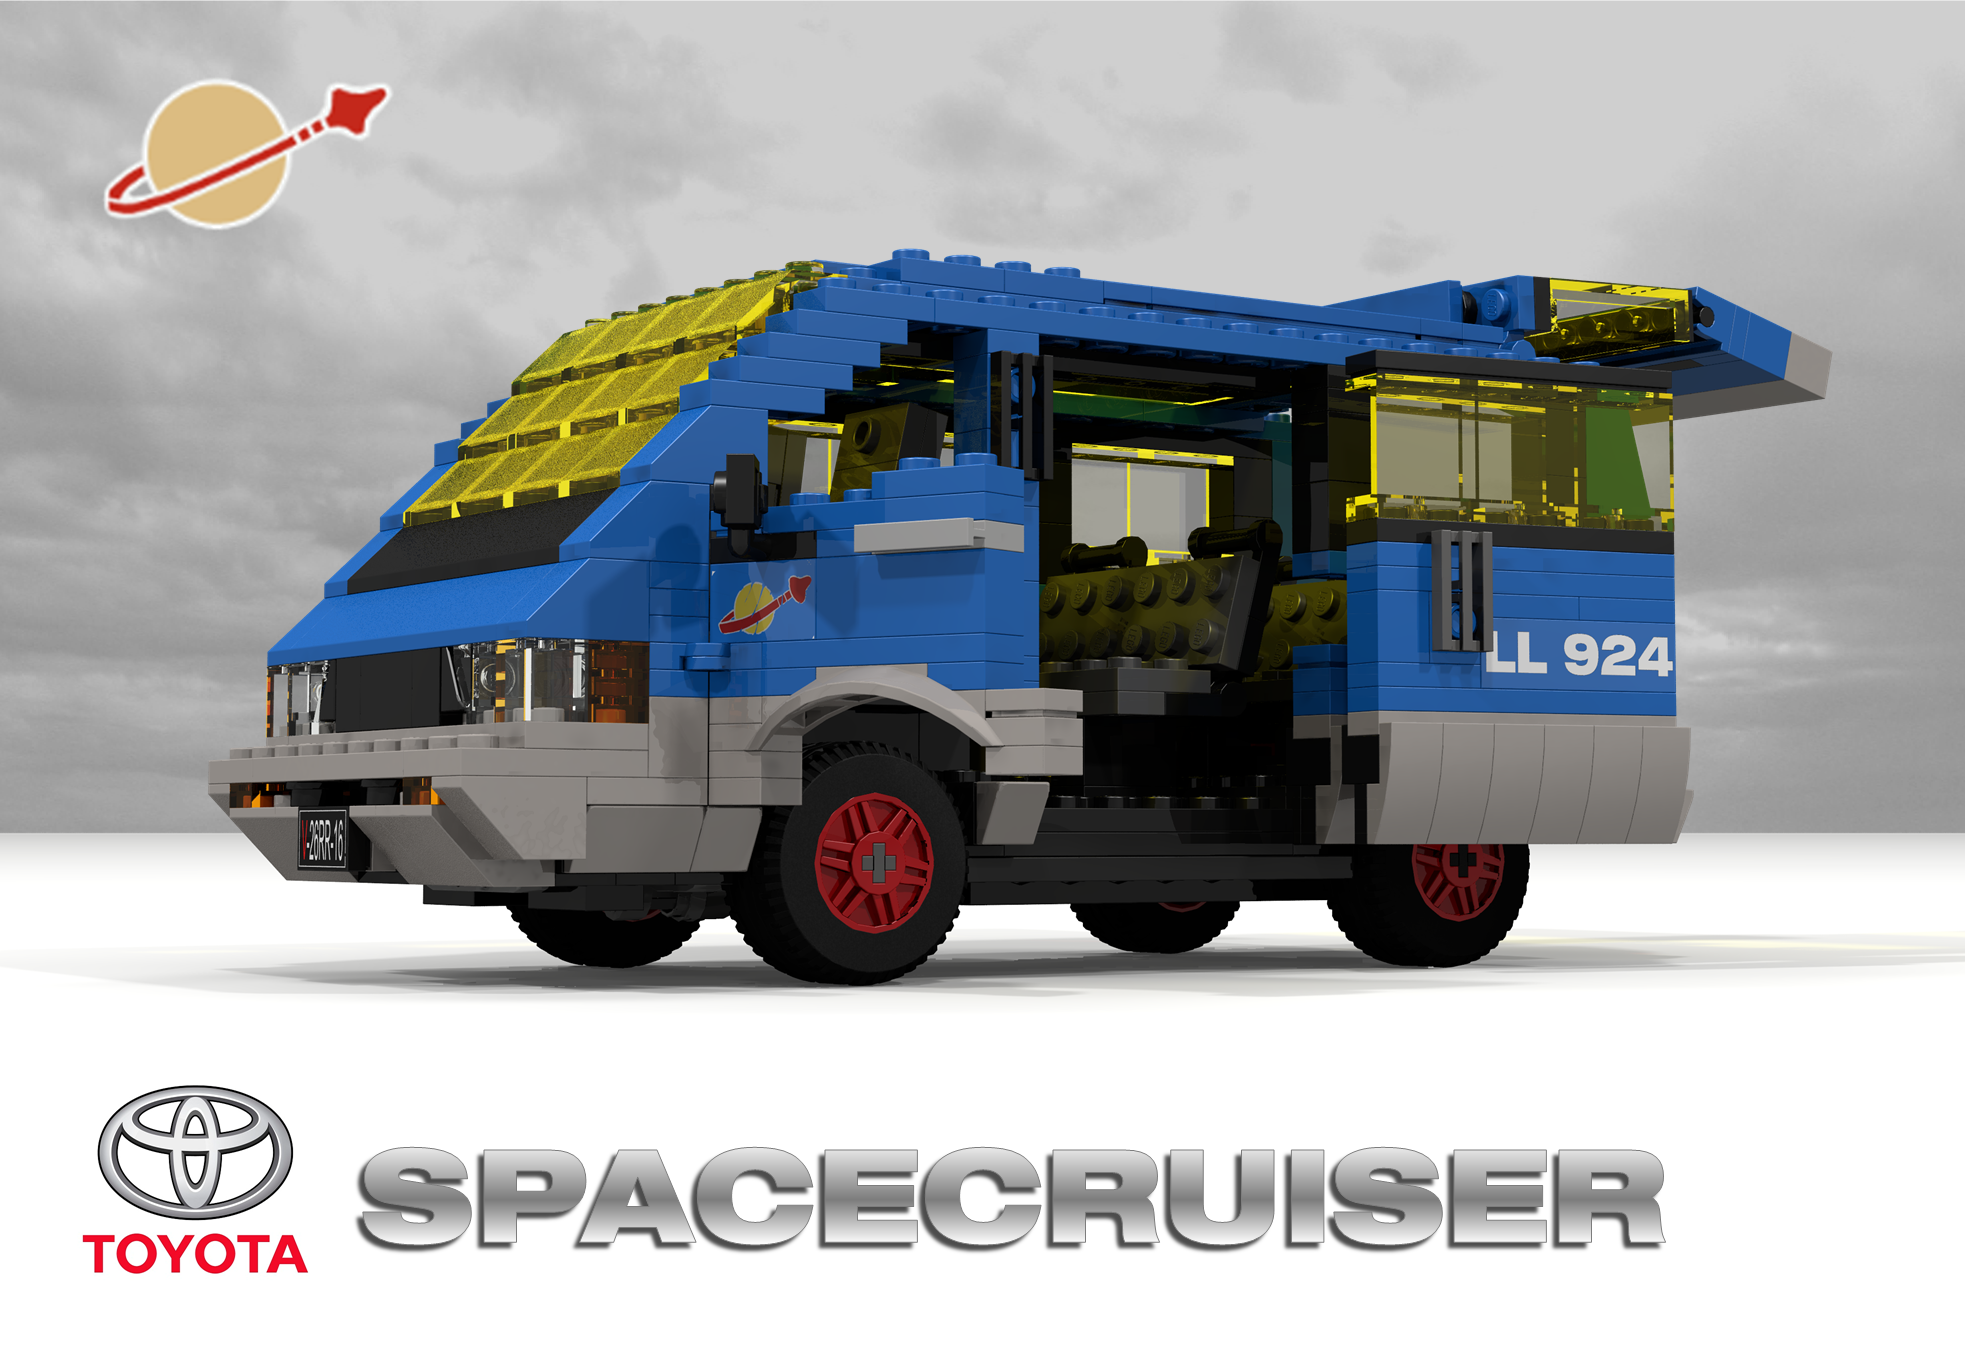 toyota_spacecruiser_ll924_03.png